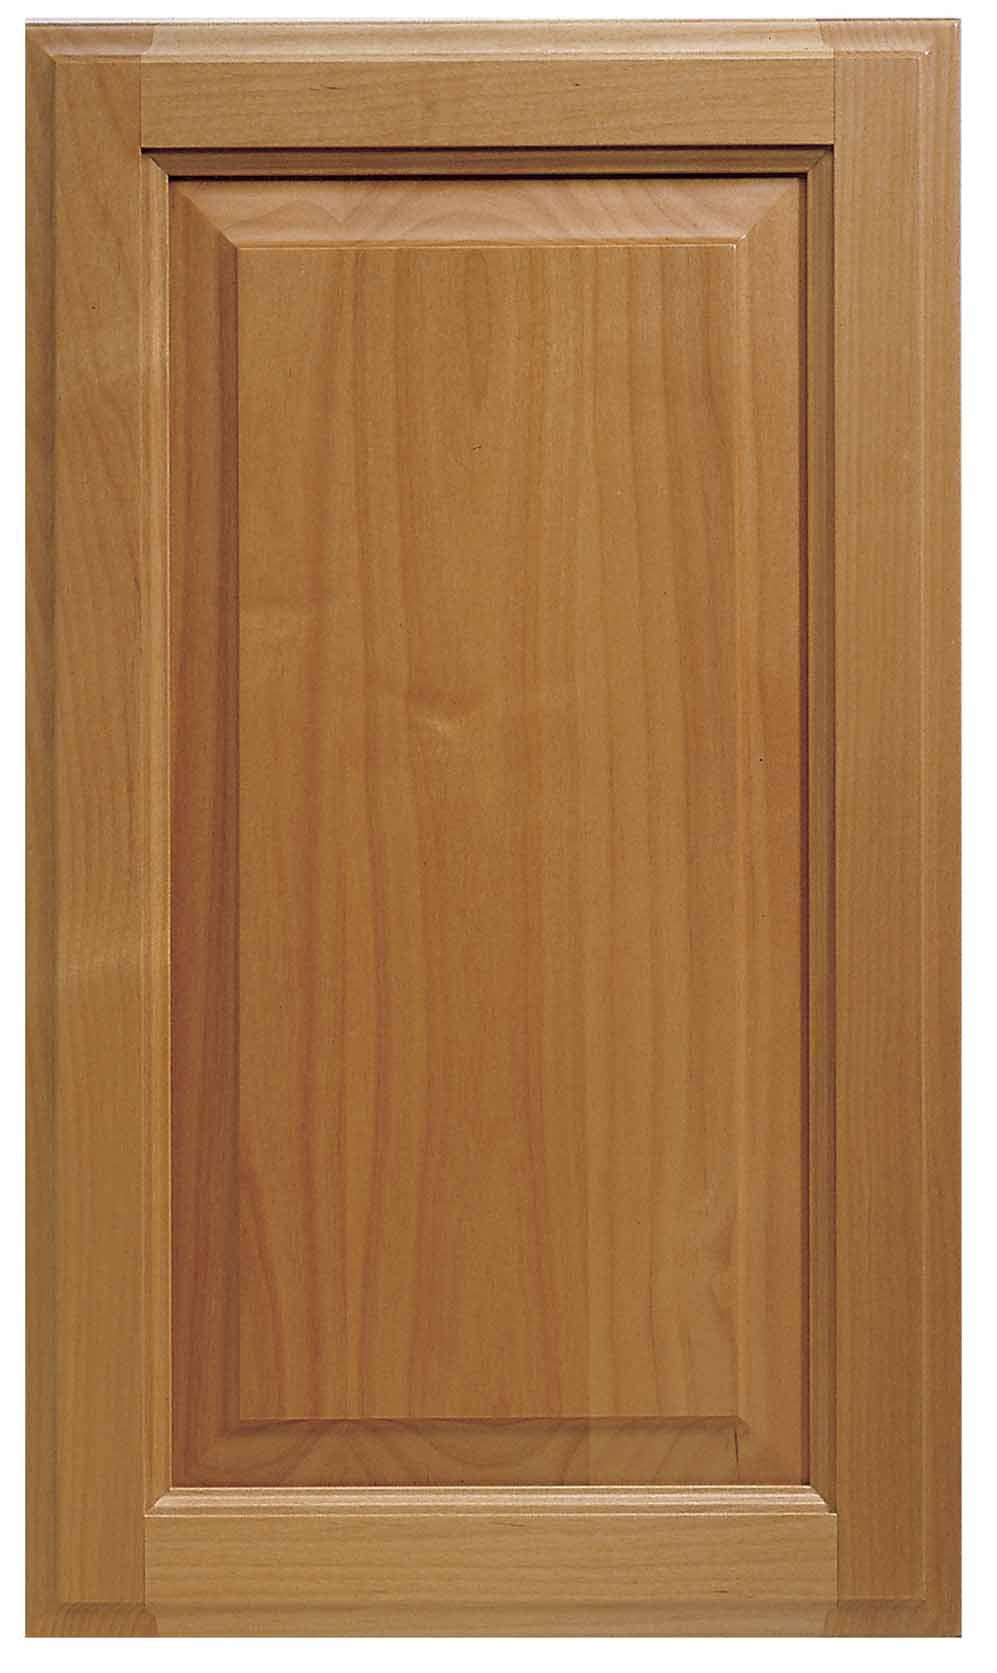 Revere Paint Grade Poplar Frame With Mdf Panel Cabinet Doors By